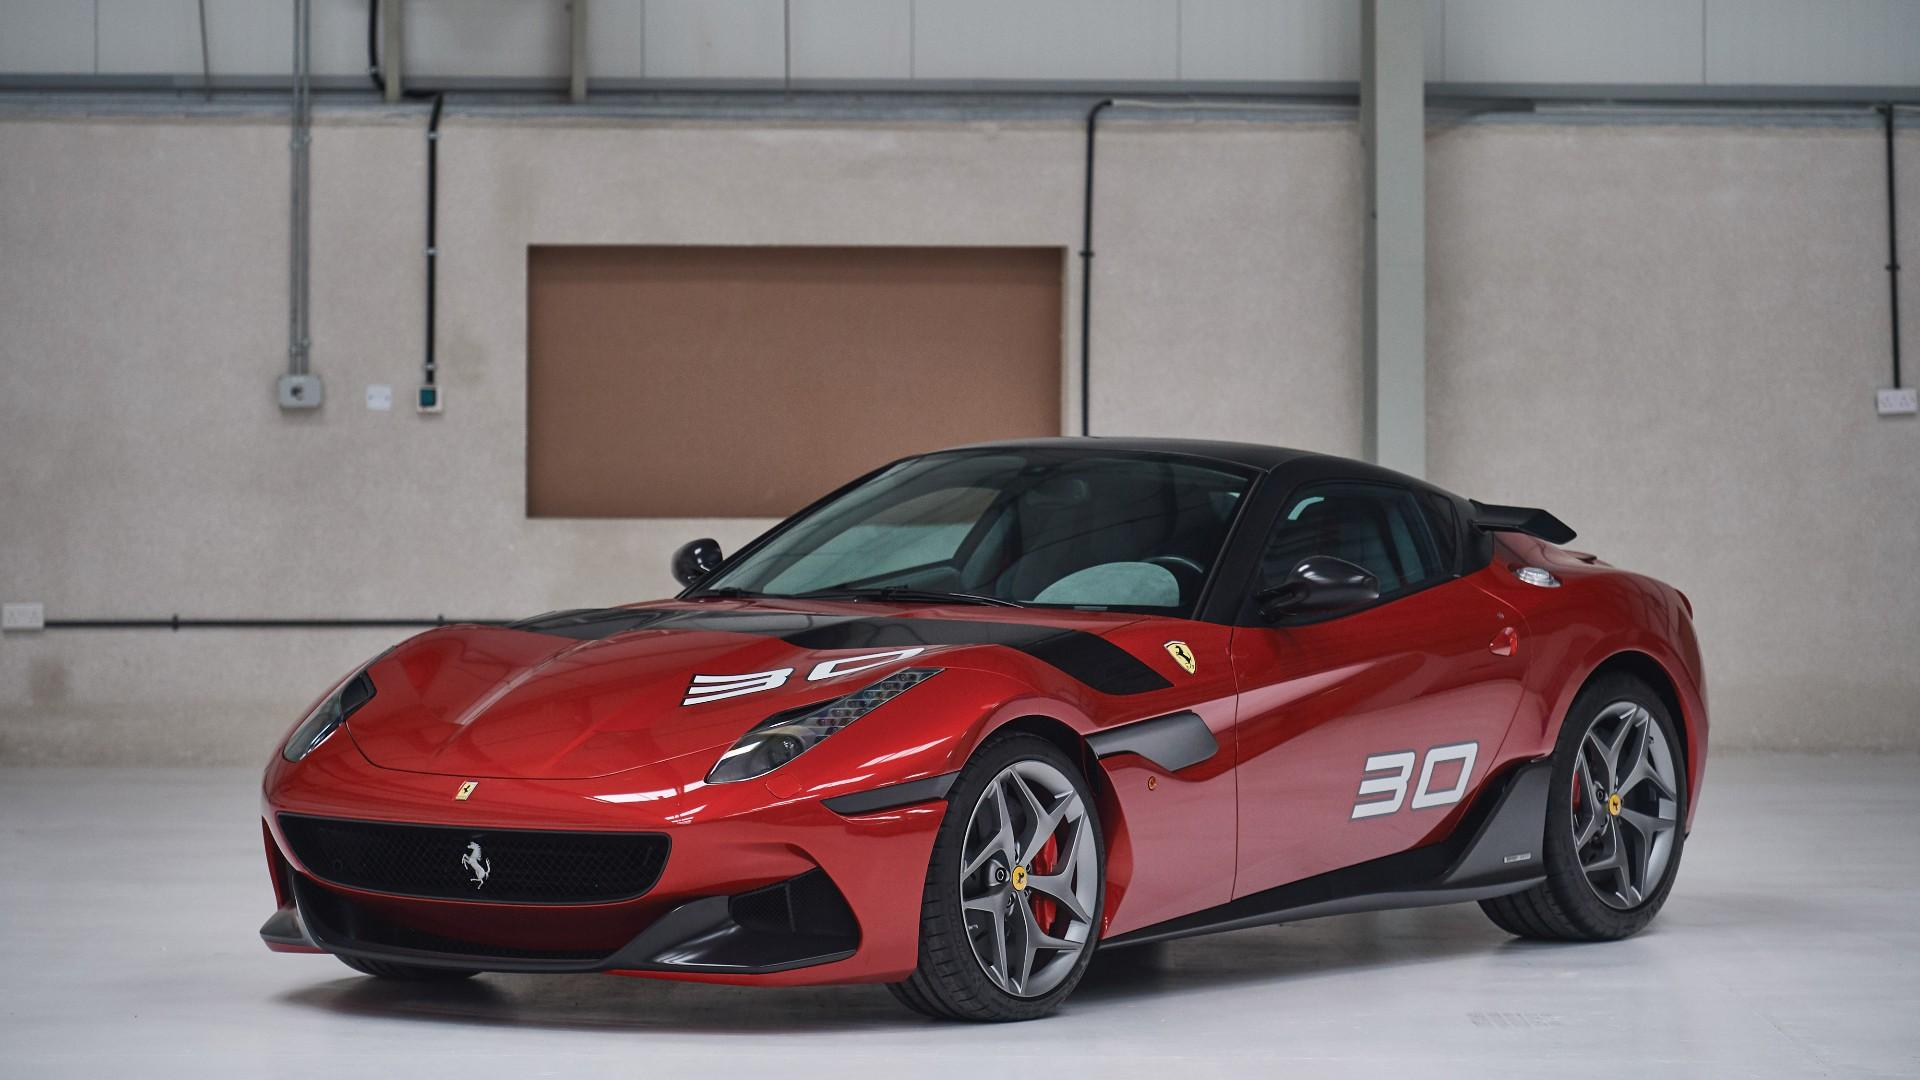 Ferrari SP30 is the First Ever Special Projects Cars on Public Sale